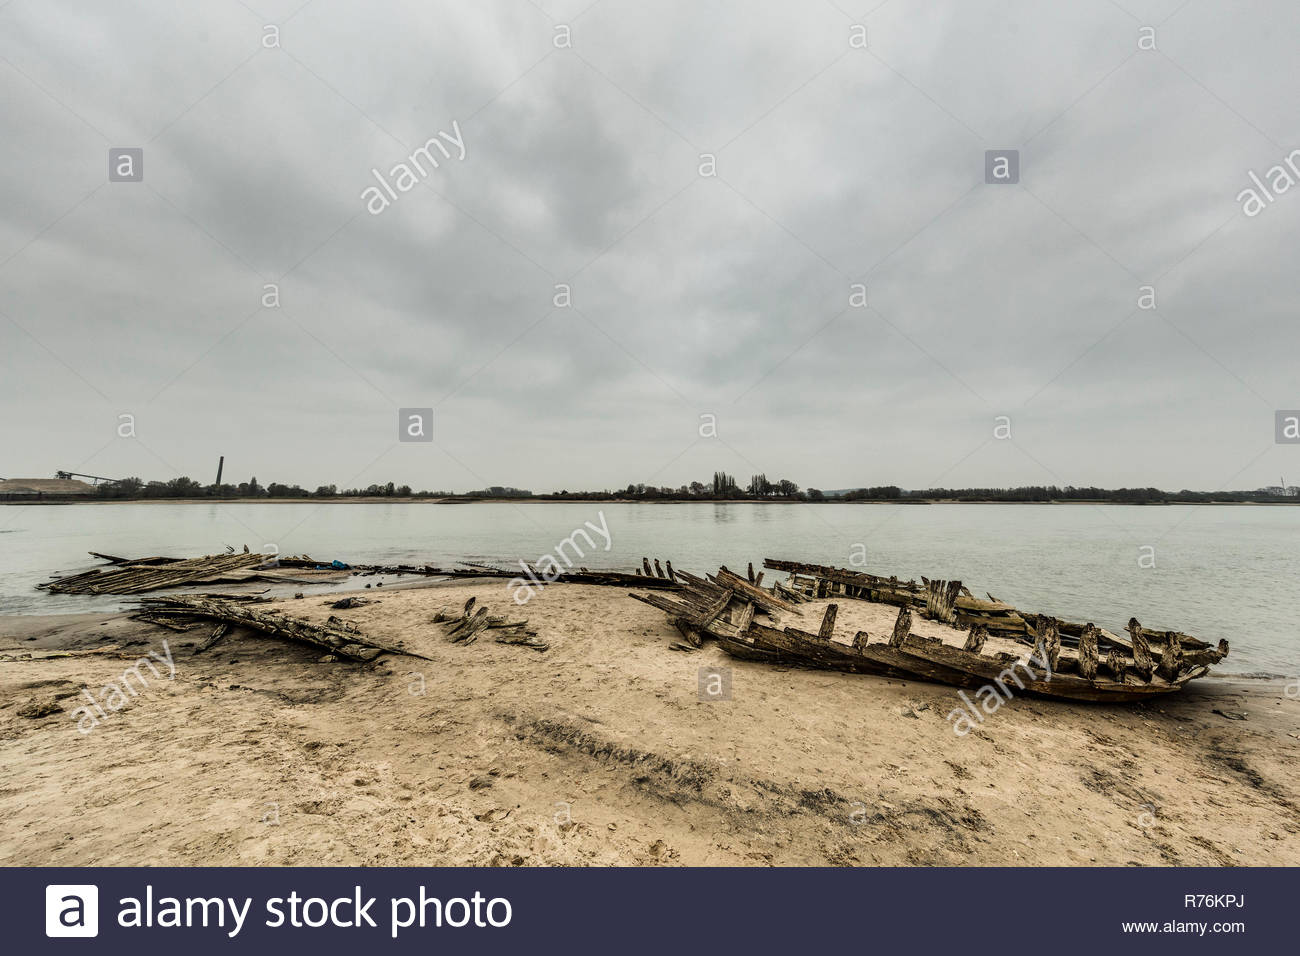 Remains of a shipwreck, visible because of the extreme low tide, on the shores of the Lower Rhine near Kleve, Germany - Stock Image